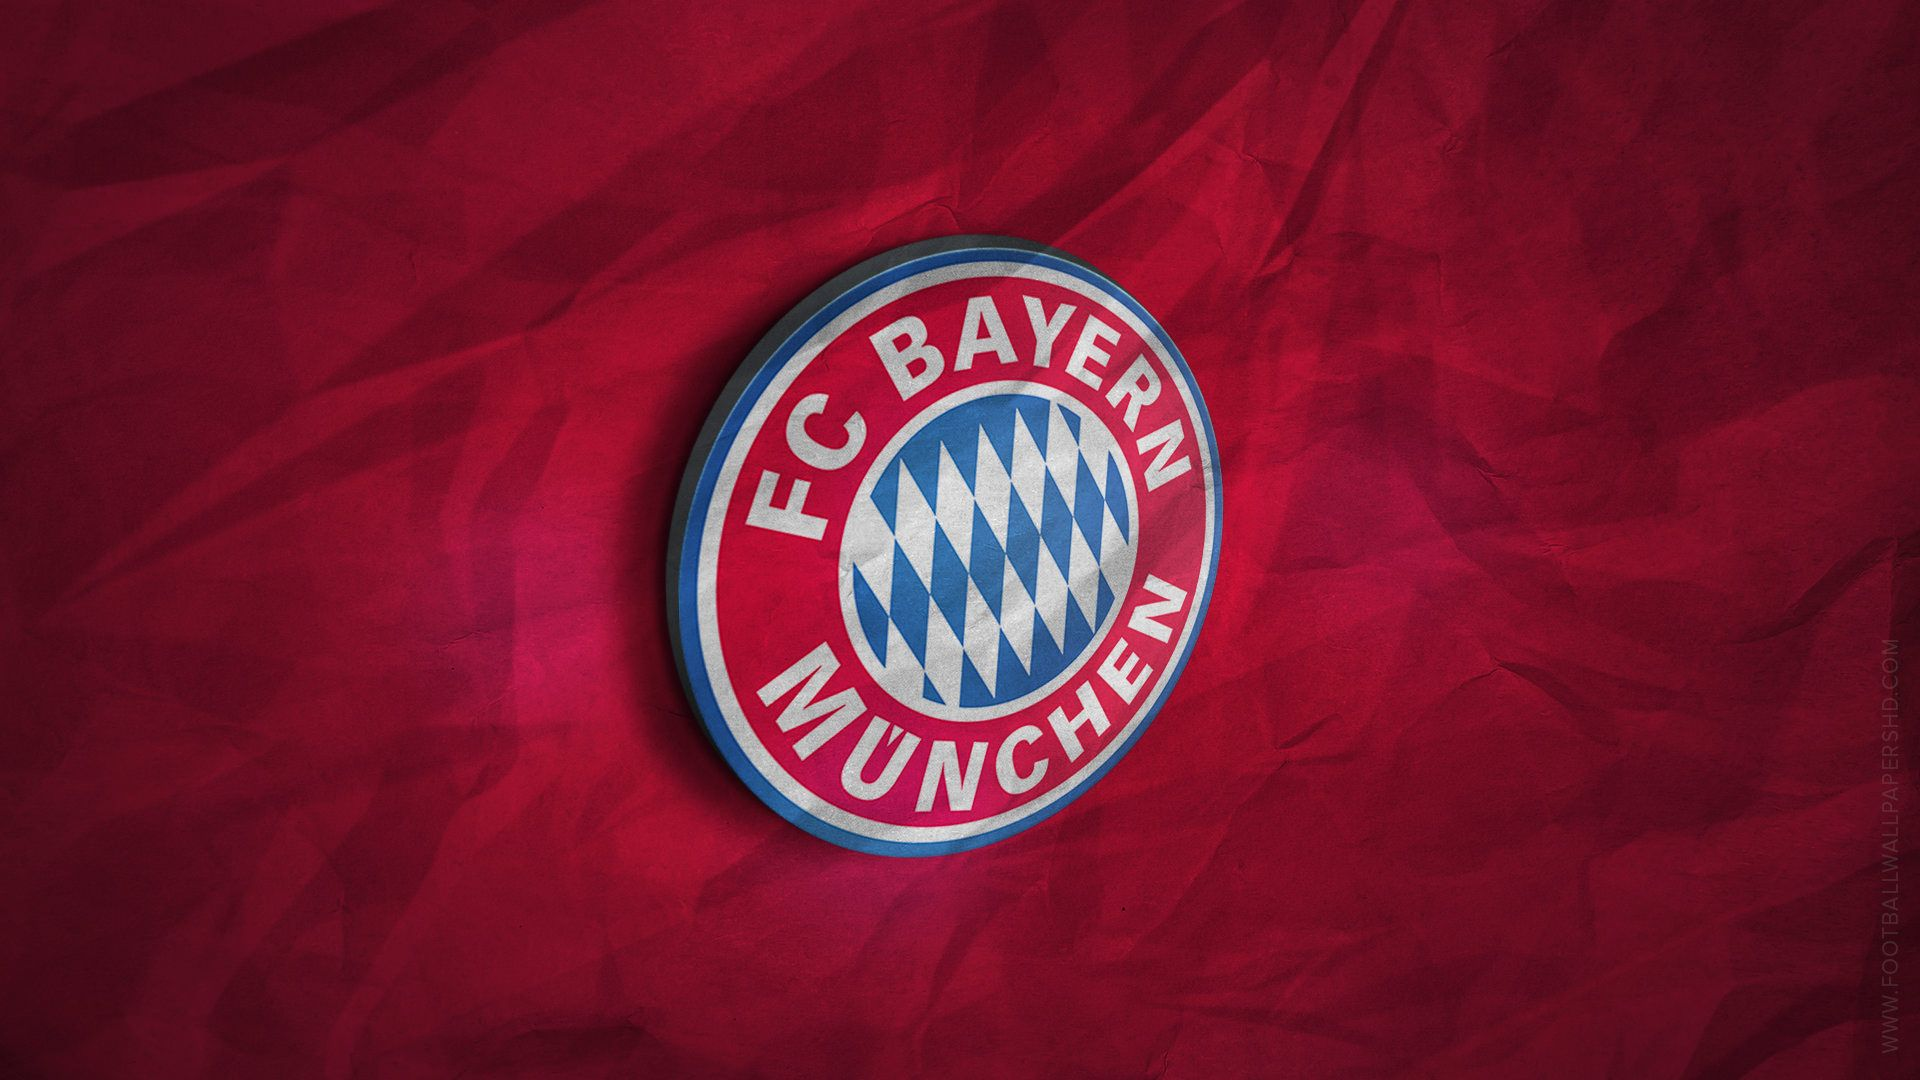 Bayern Munich 3d Logo Wallpaper Football Wallpapers Hd Bayern Munich Wallpapers Munich Bayern